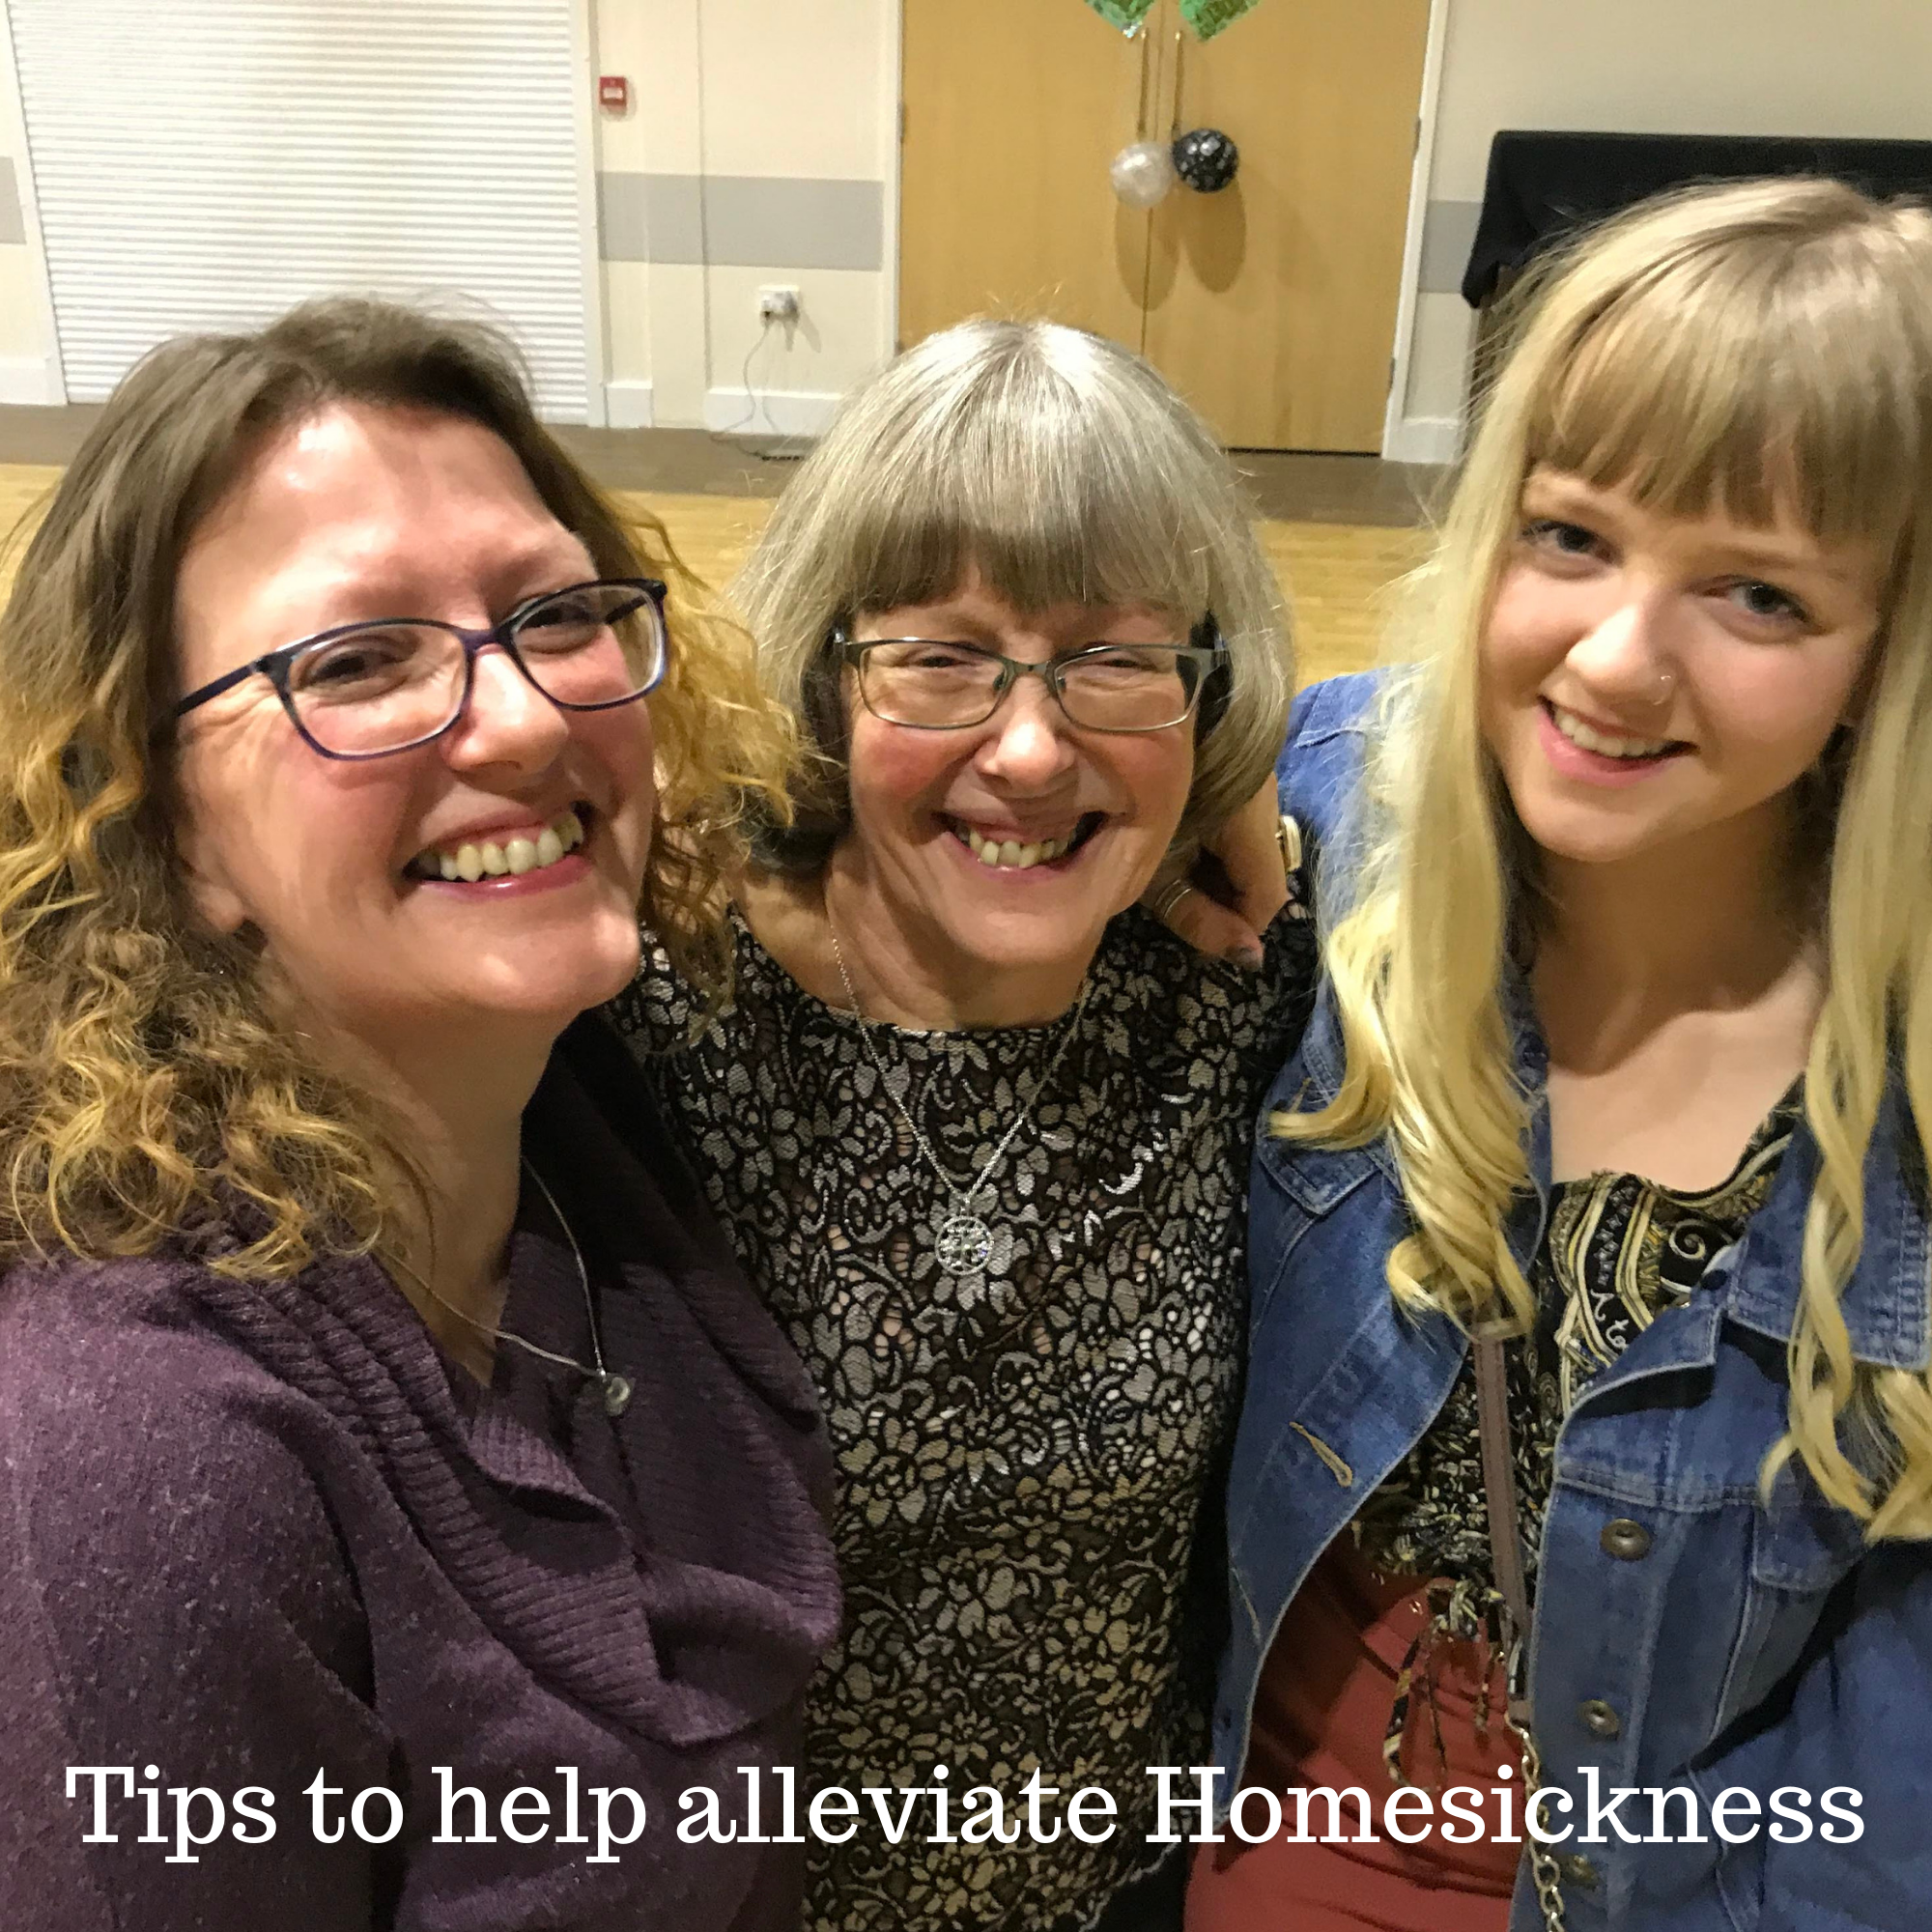 Tips to help alleviate Homesickness